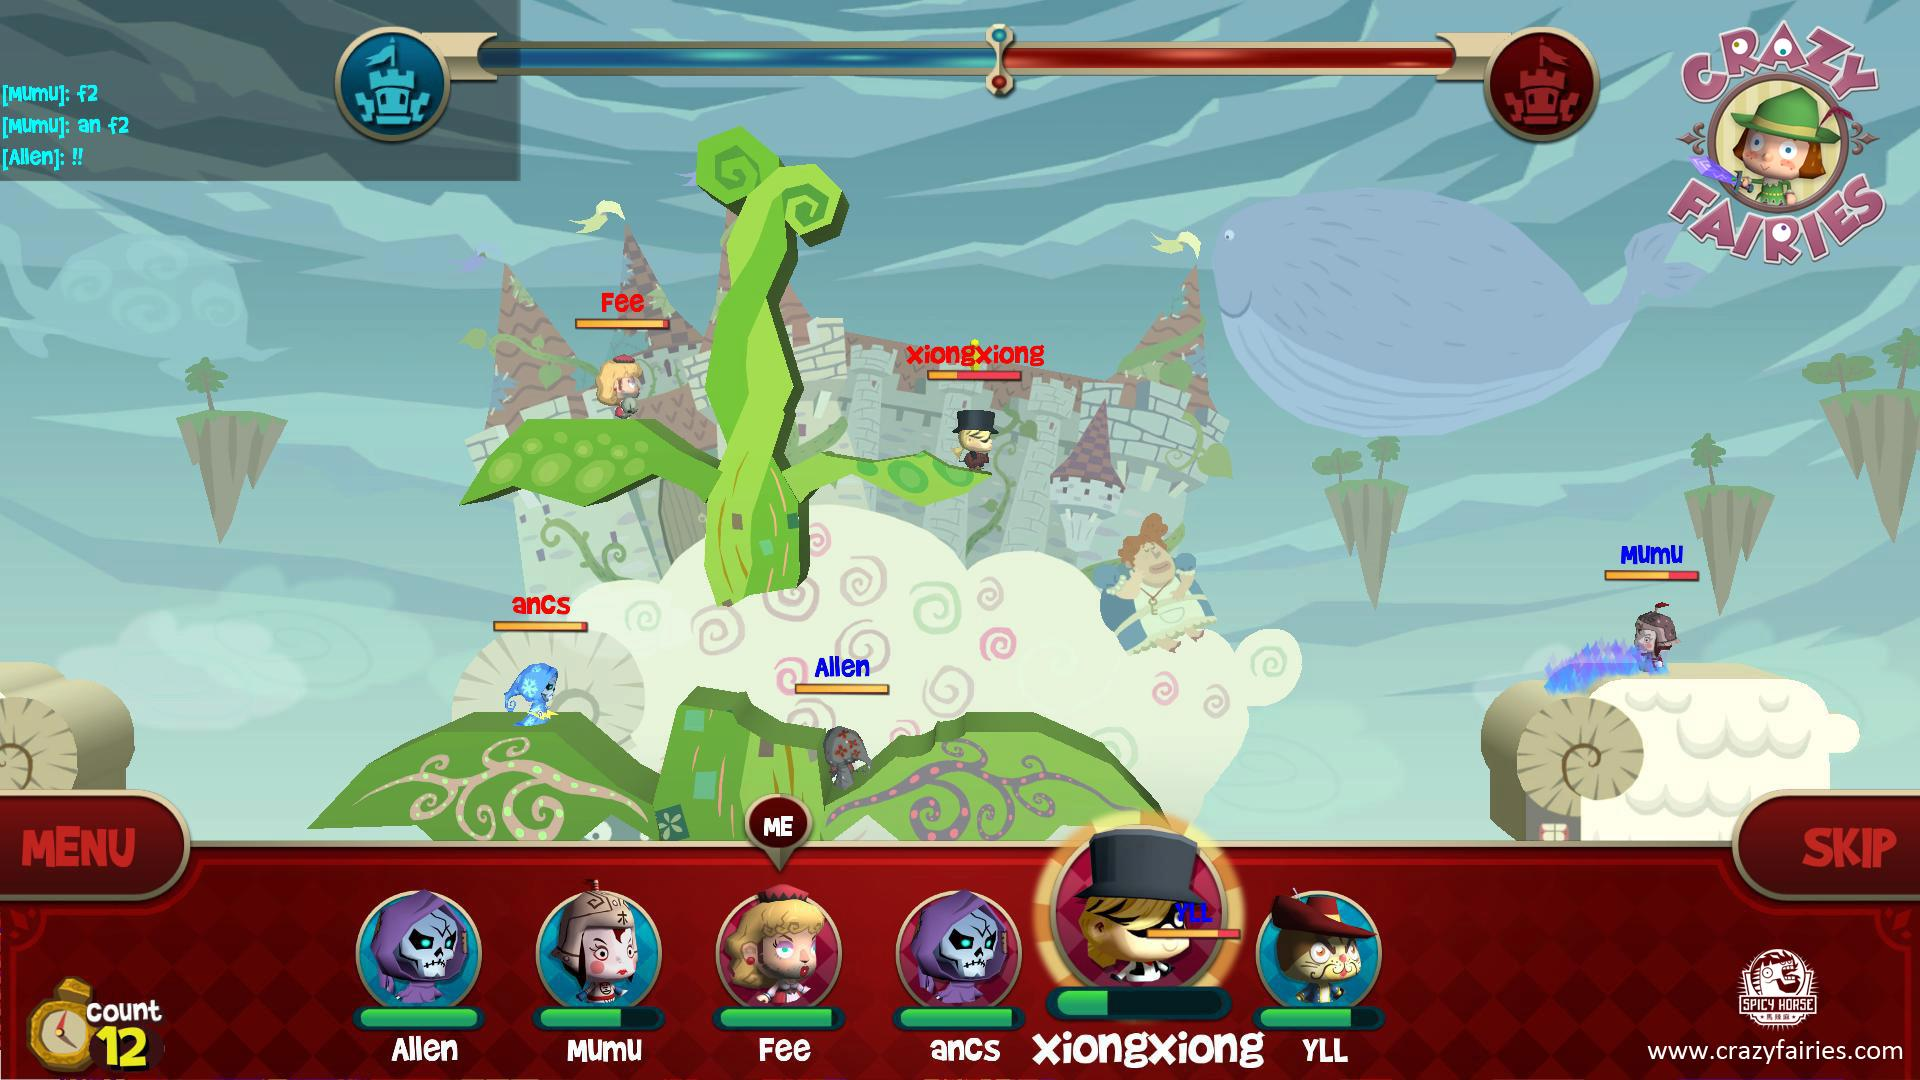 American McGee's cross-platform title Crazy Fairies: One World to go live later this year on PC, iOS, and Android